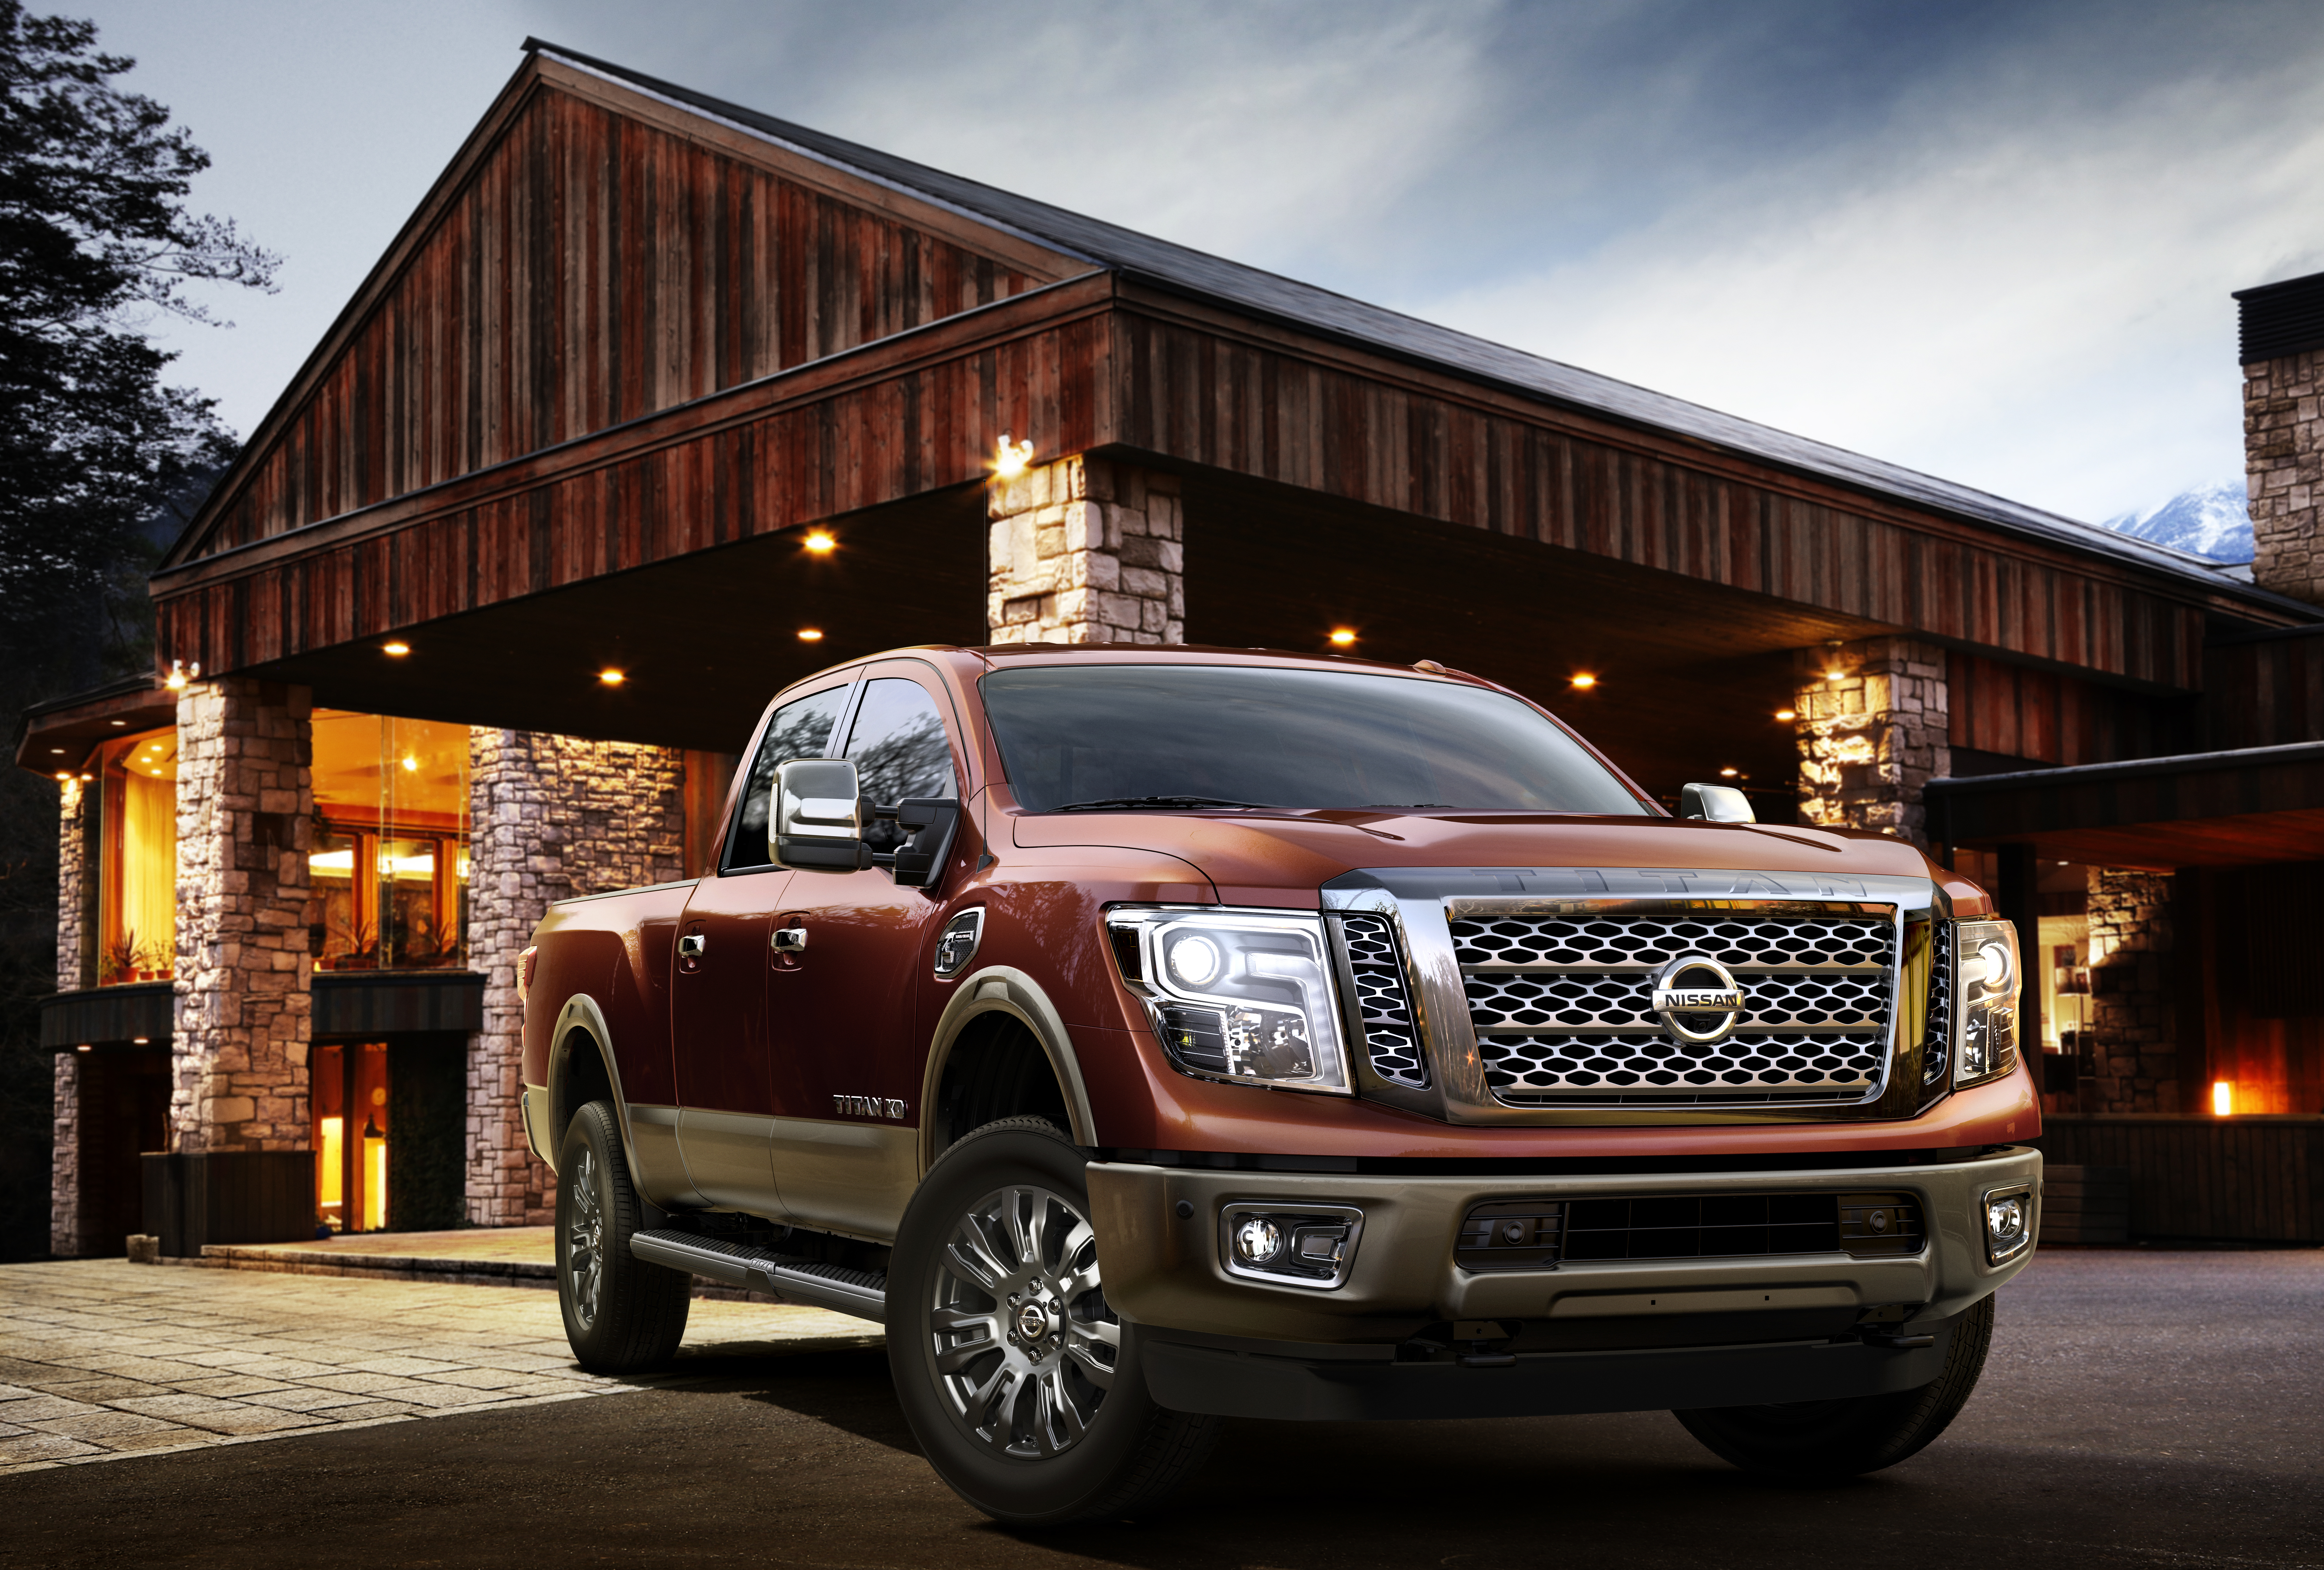 2016 Nissan Titan Xd Makes World Debut At North American 2009 Scion Xb Engine Diagram International Auto Show Business Wire